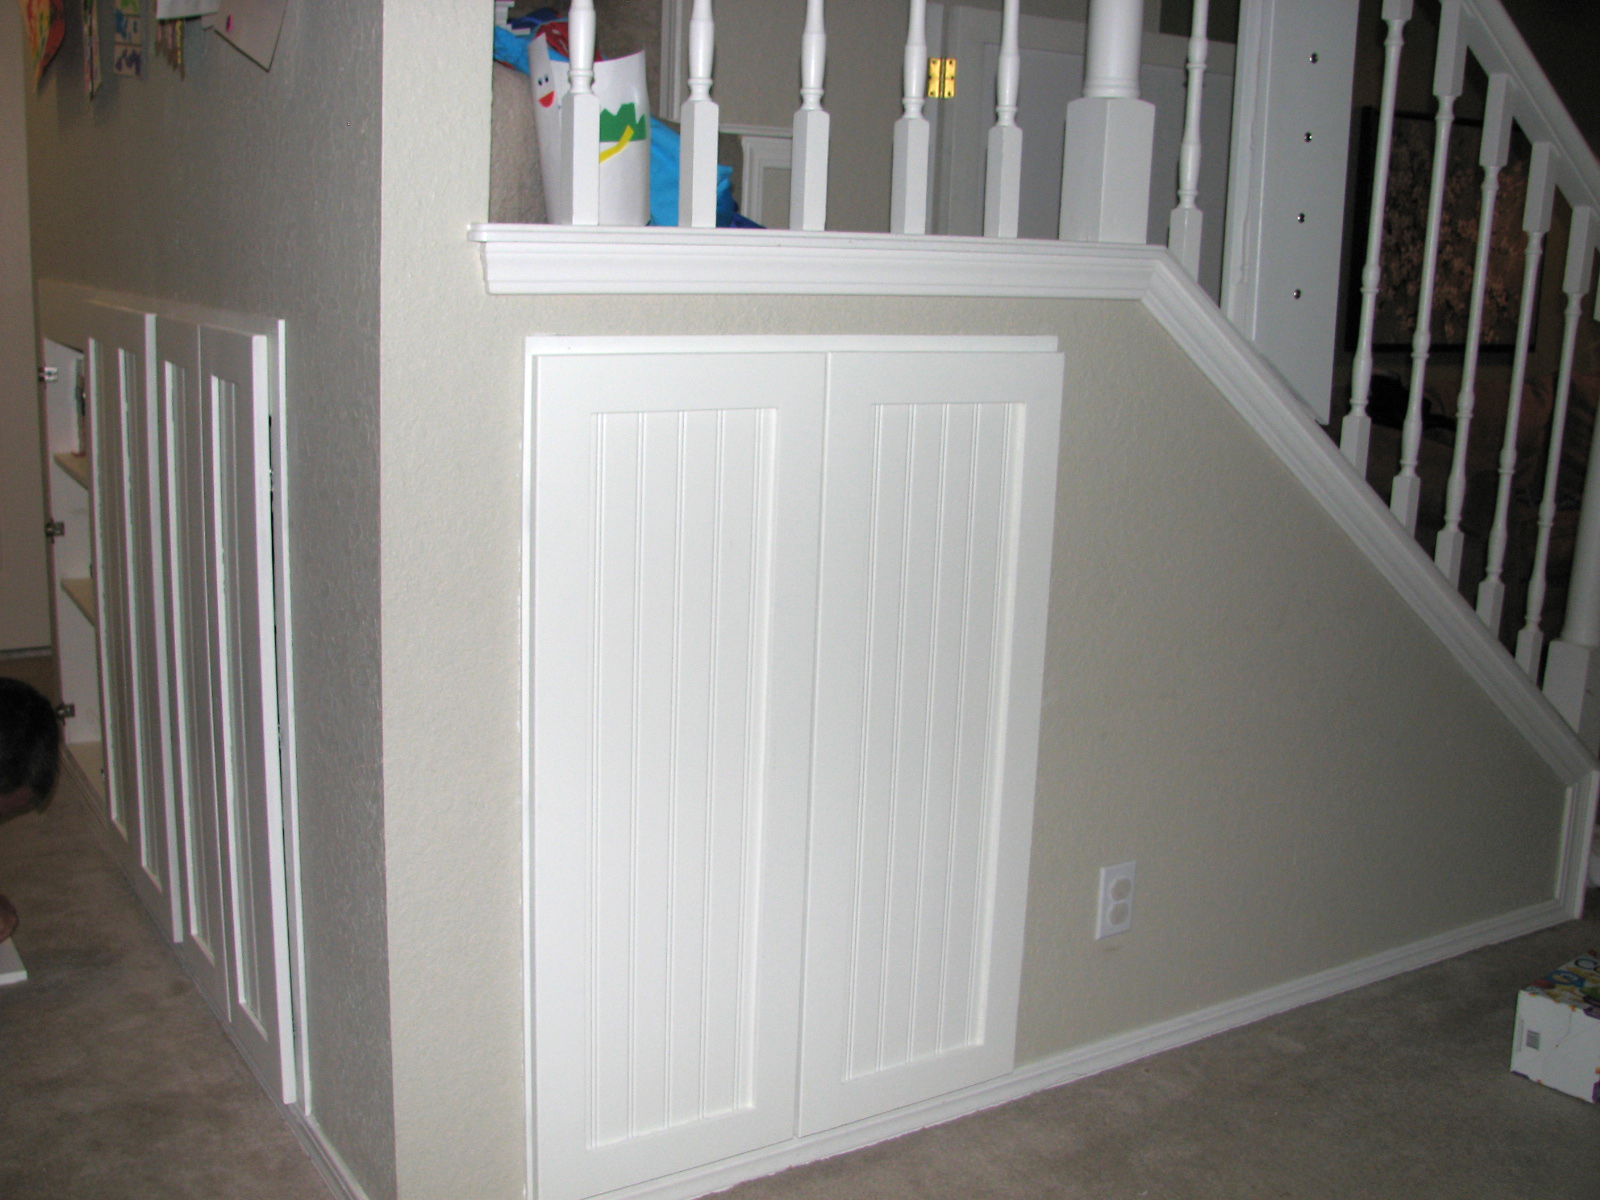 Lighting Basement Washroom Stairs: Clever Faeries: Home Design: Under The Stairs Storage